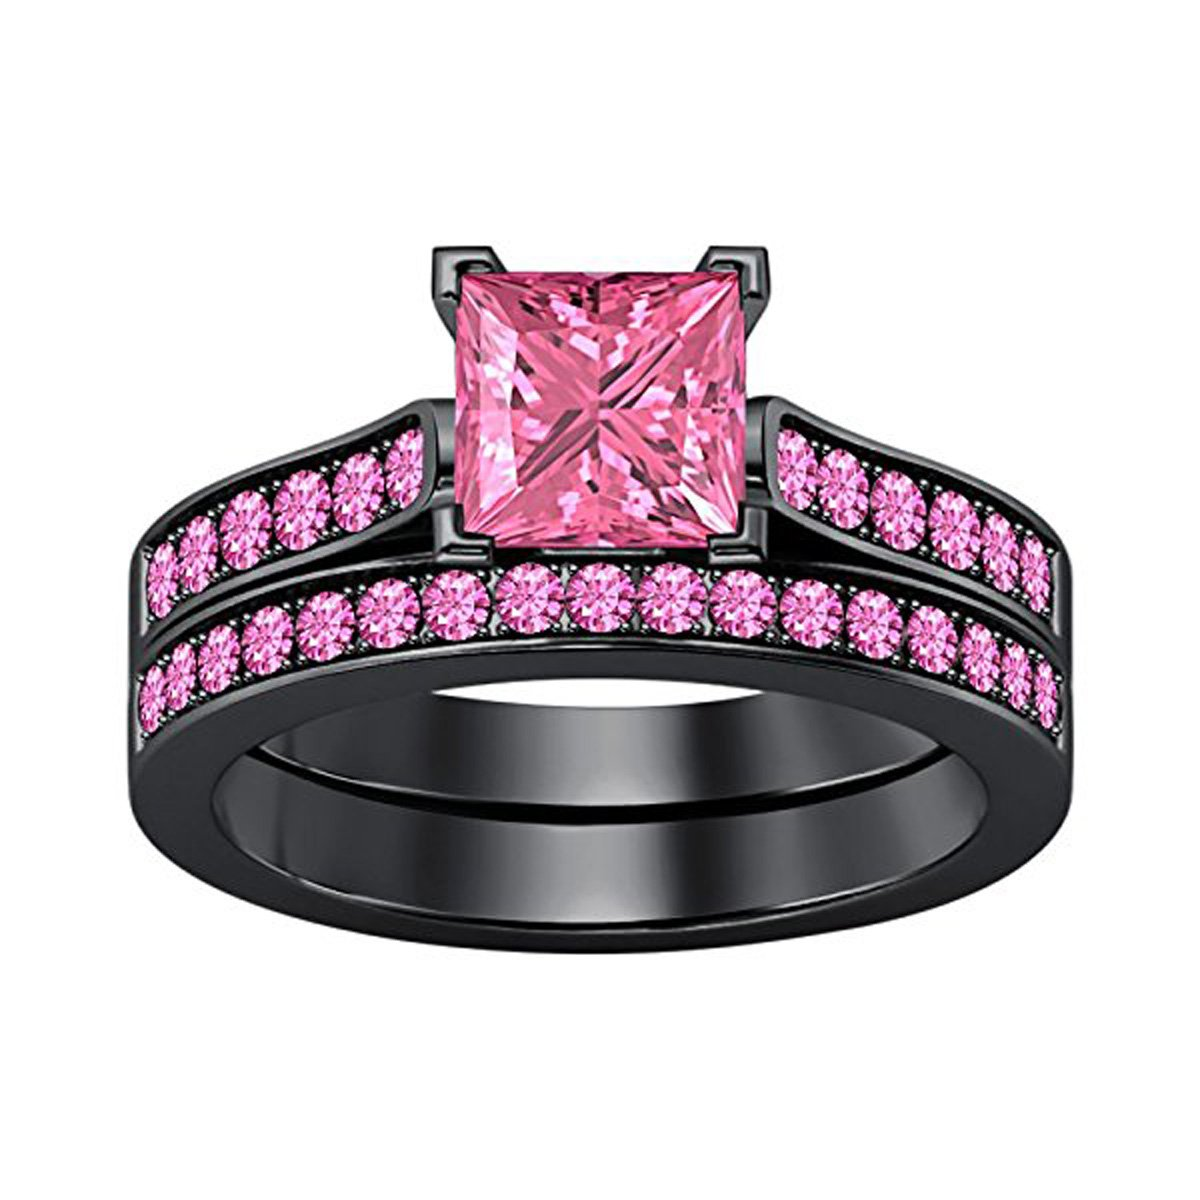 Gems and Jewels 2.75 Ct Princess Cut Pink Sapphire Wedding Band Engagement Bridal Ring Set 14K Black Gold Plated by Gems and Jewels